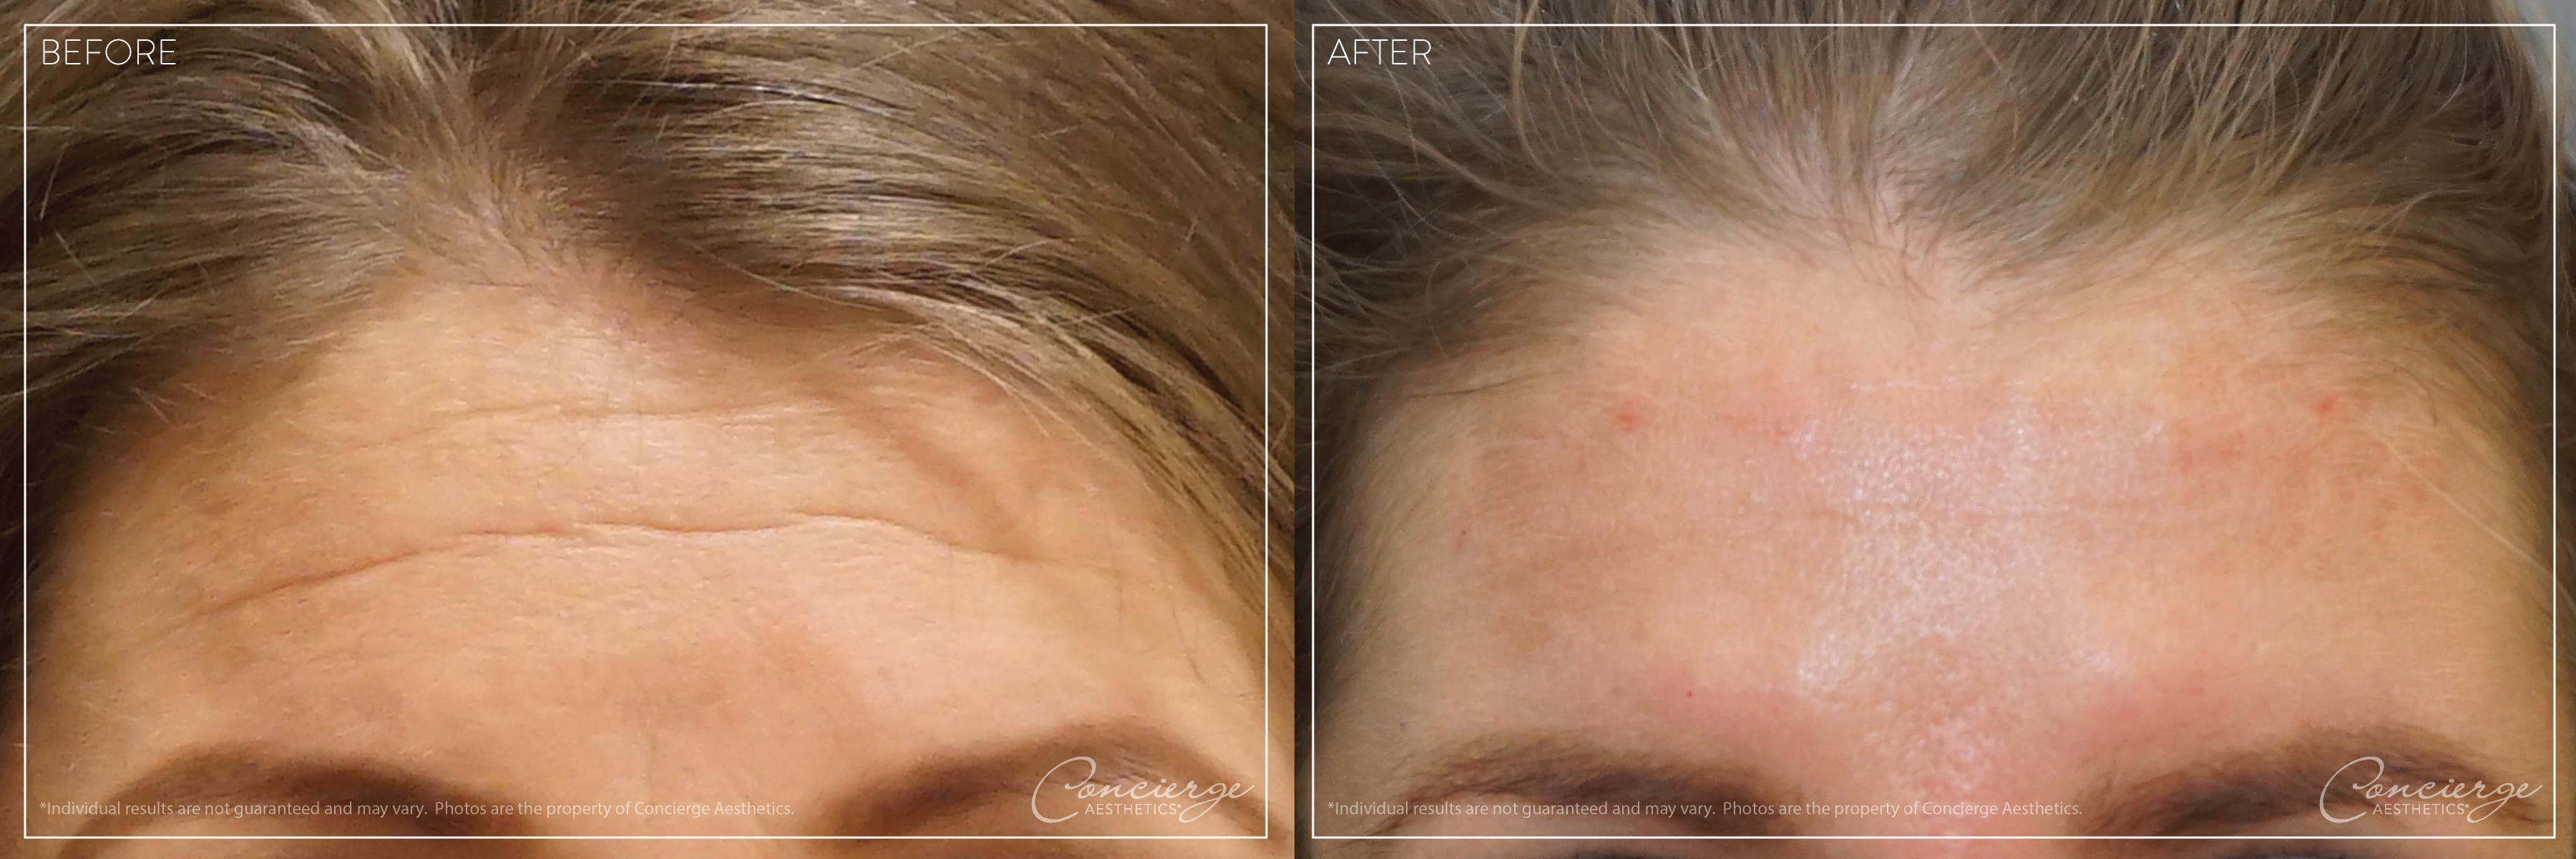 Before + After: Botox Cosmetic - Forehead Lines | Concierge Aesthetics